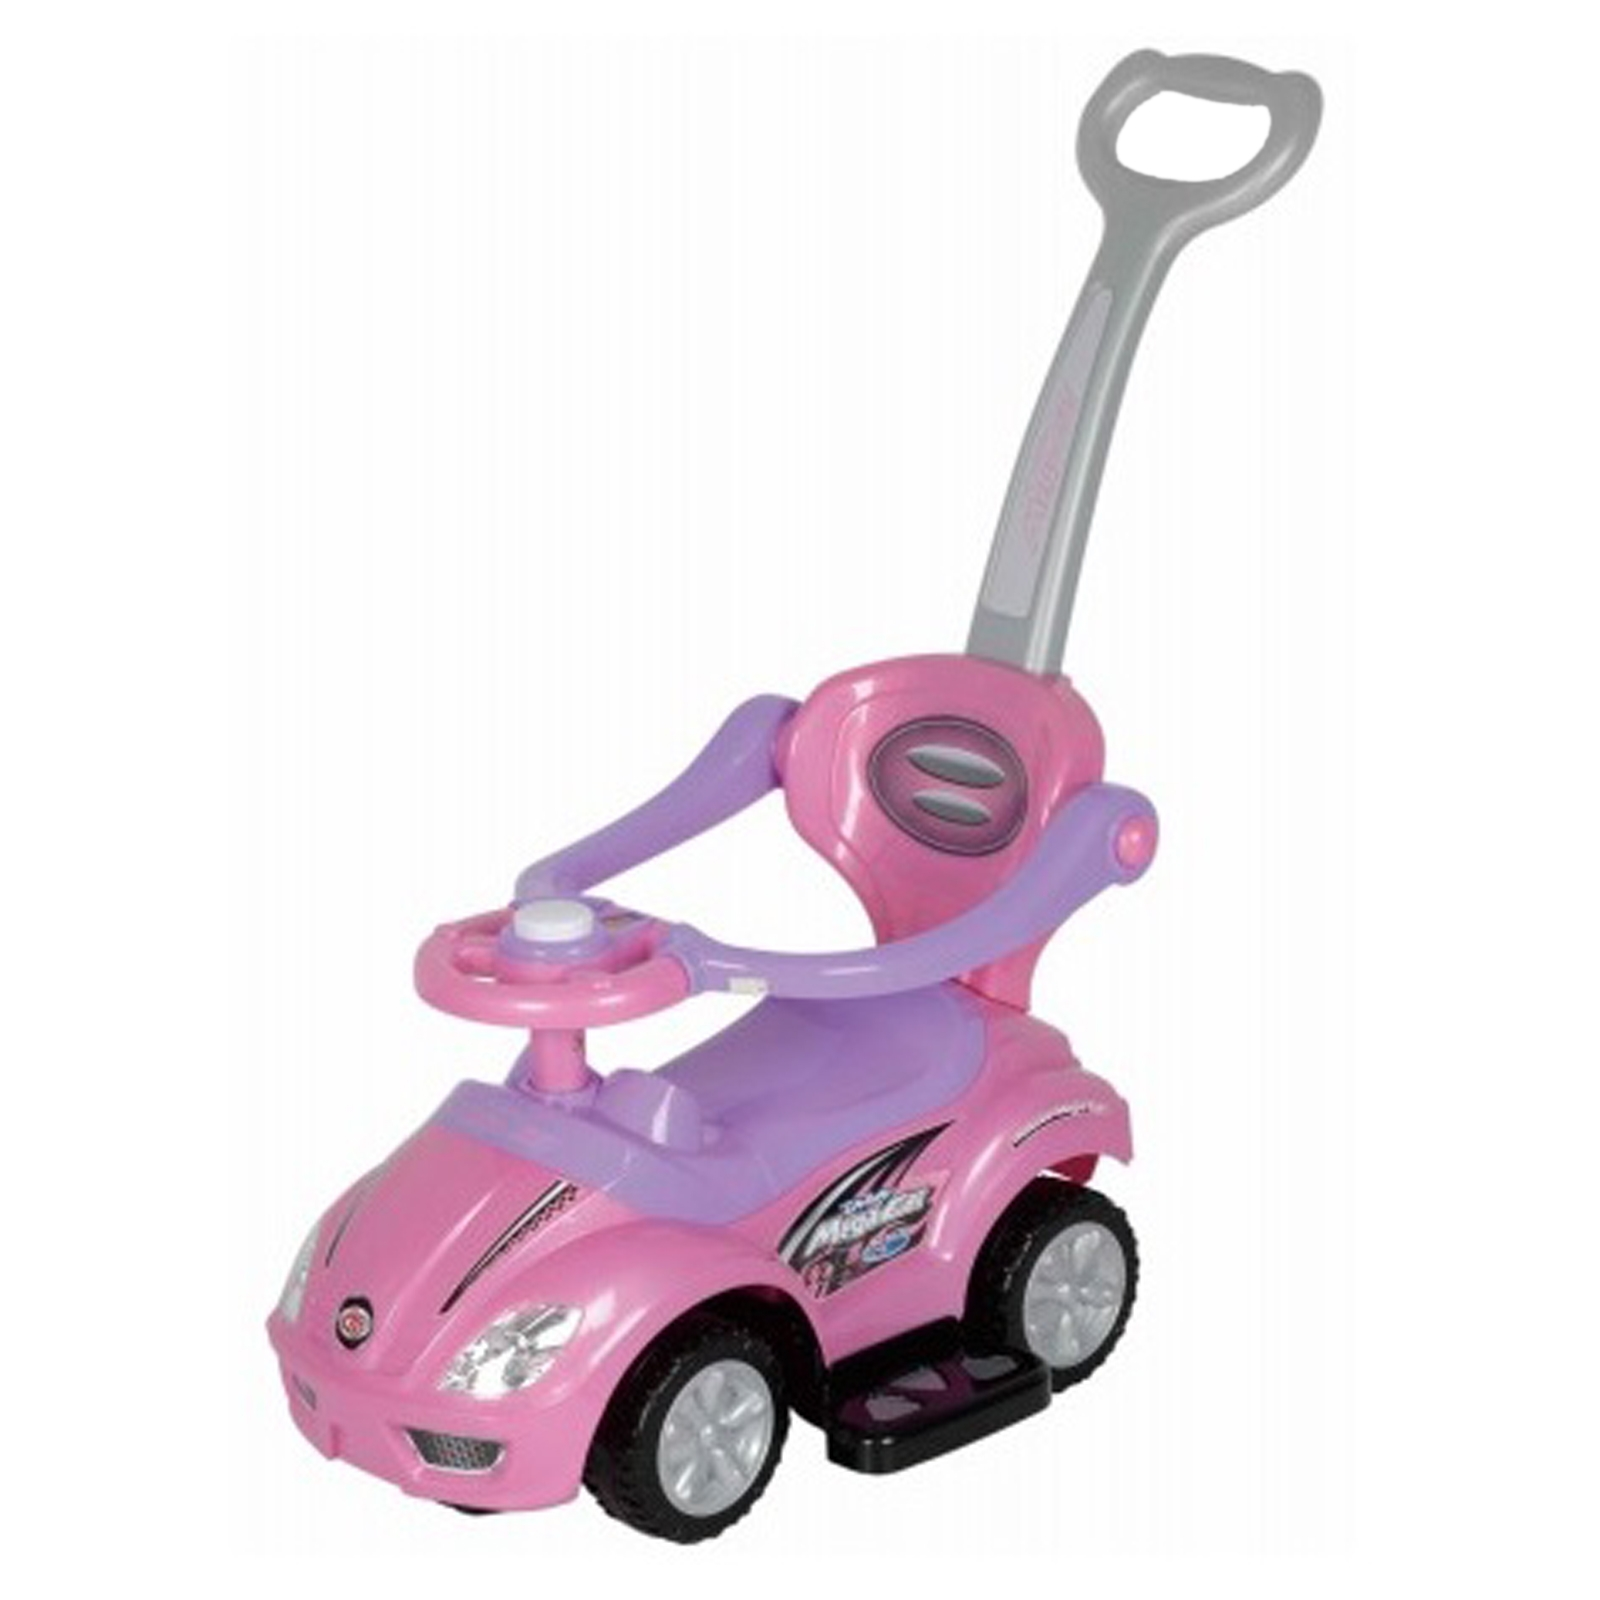 3-in-1 Stroller Kids Ride On Push Car - Pink